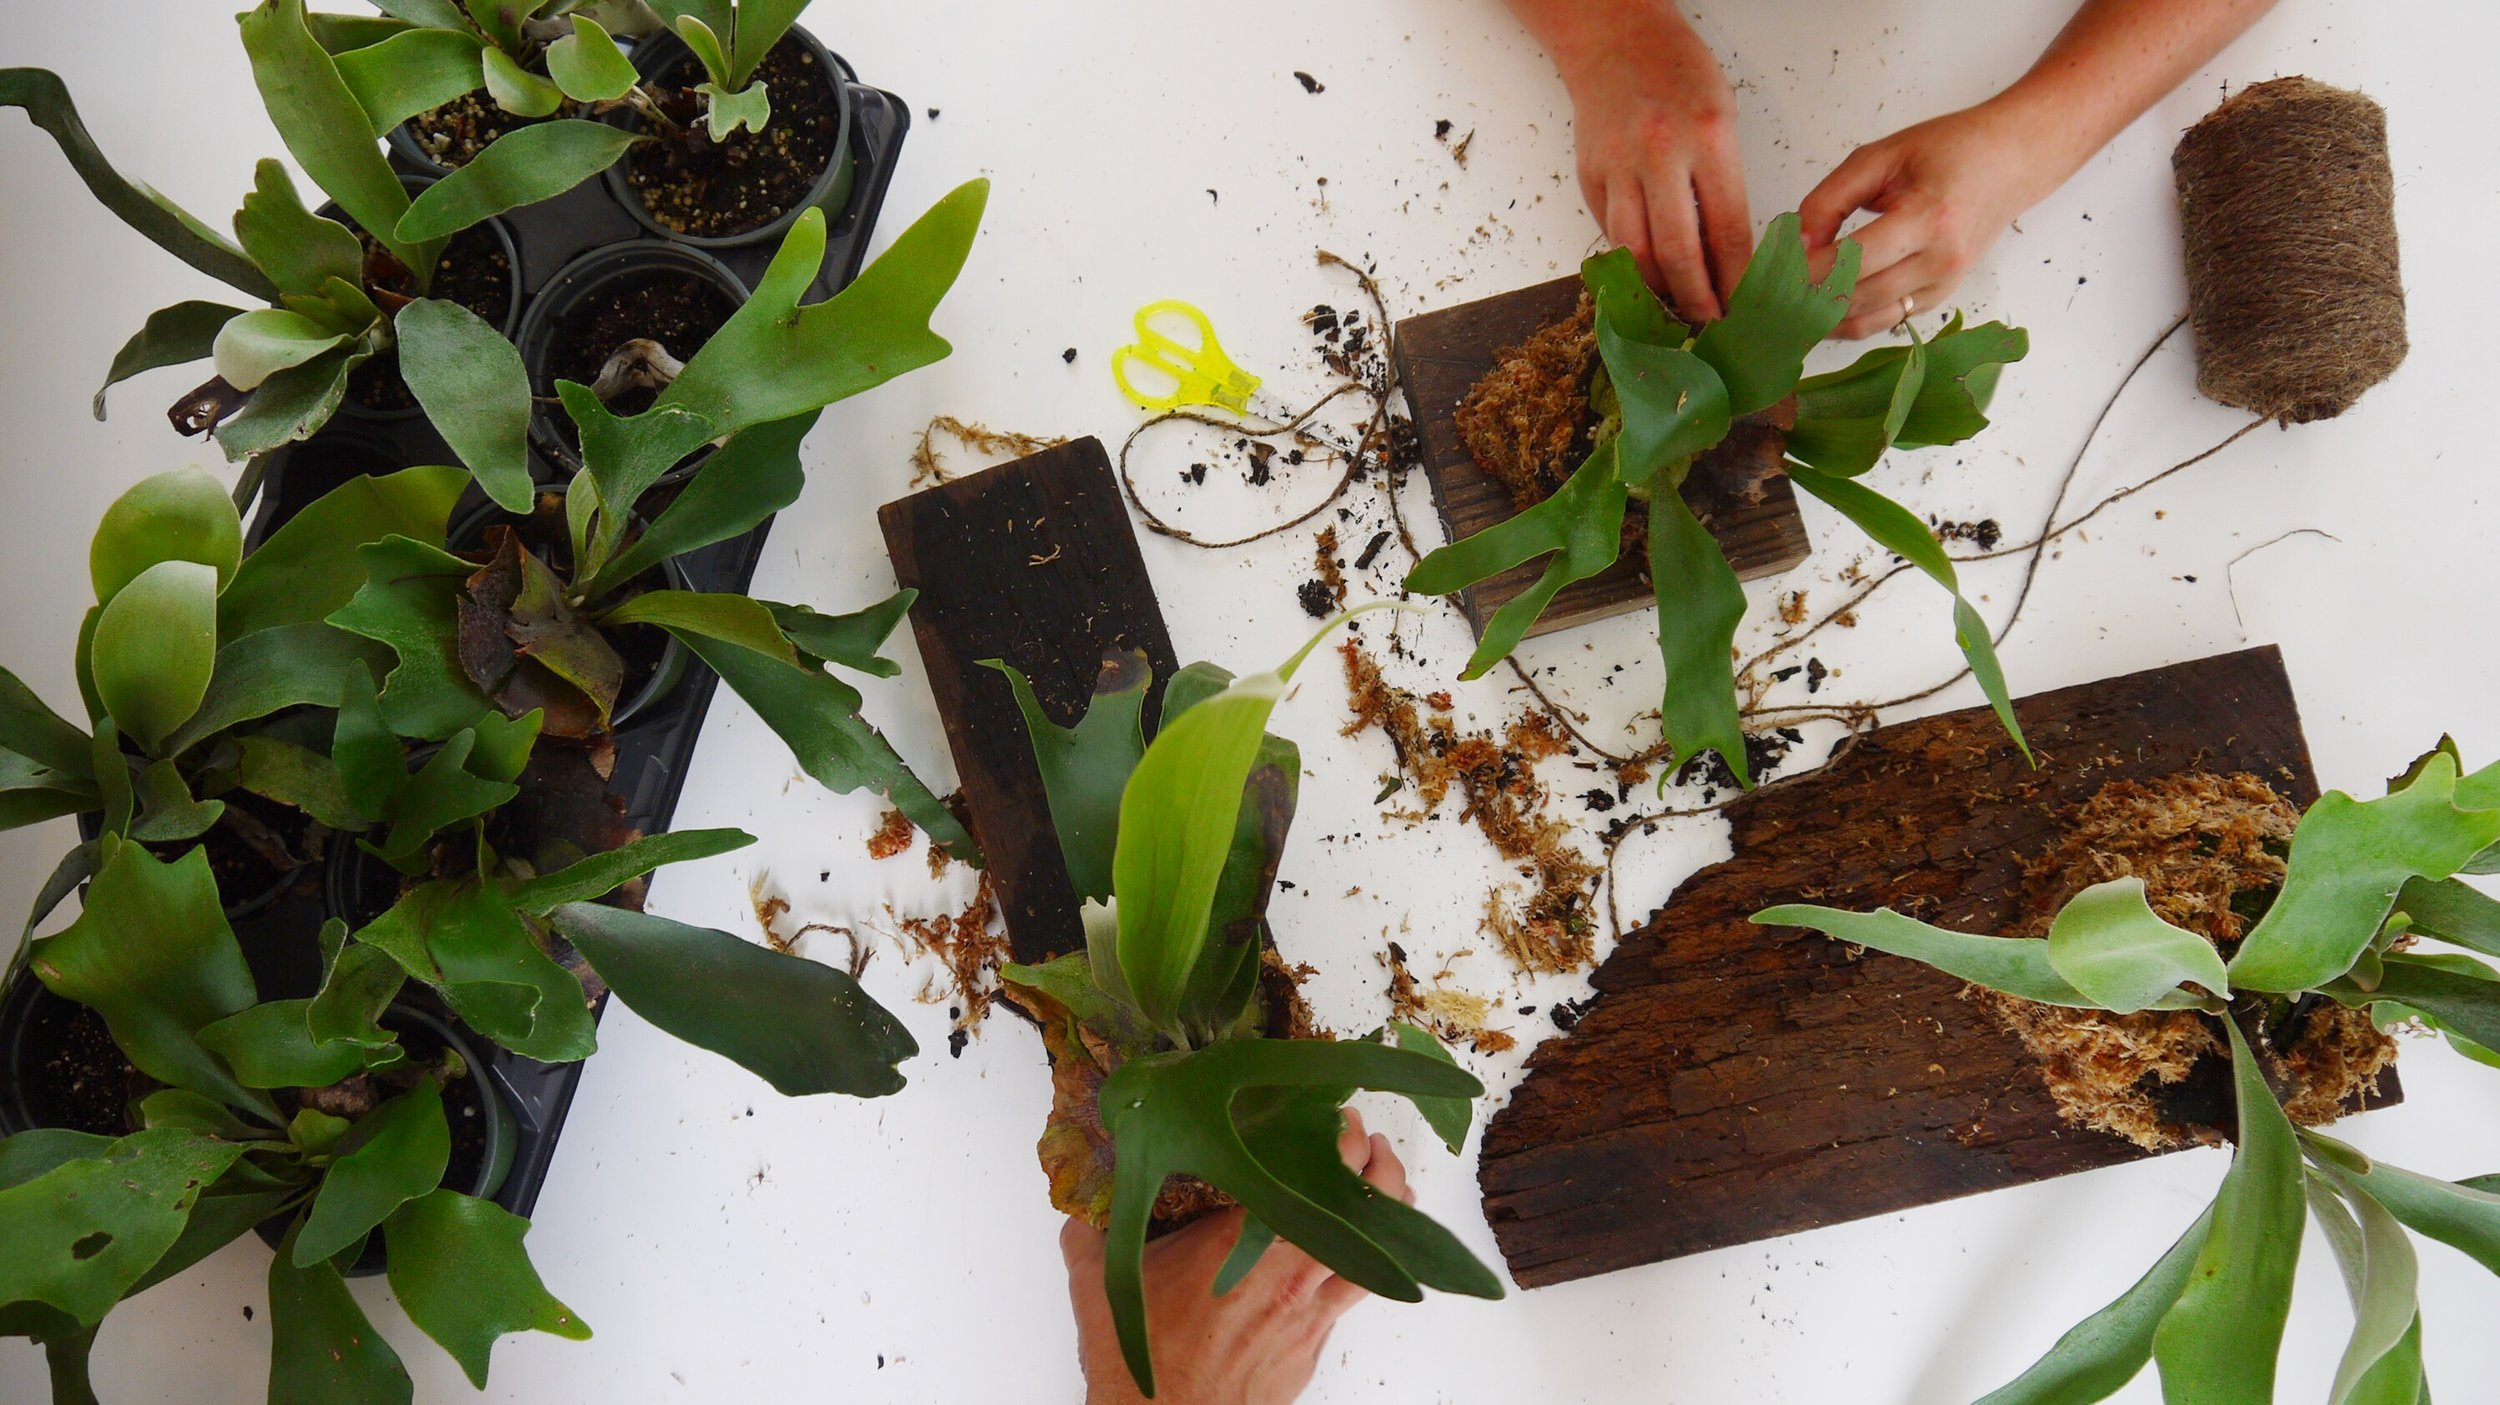 Staghorn Mounting Workshop - Join us for a Saturday of planting, hammering, crafting and learning.